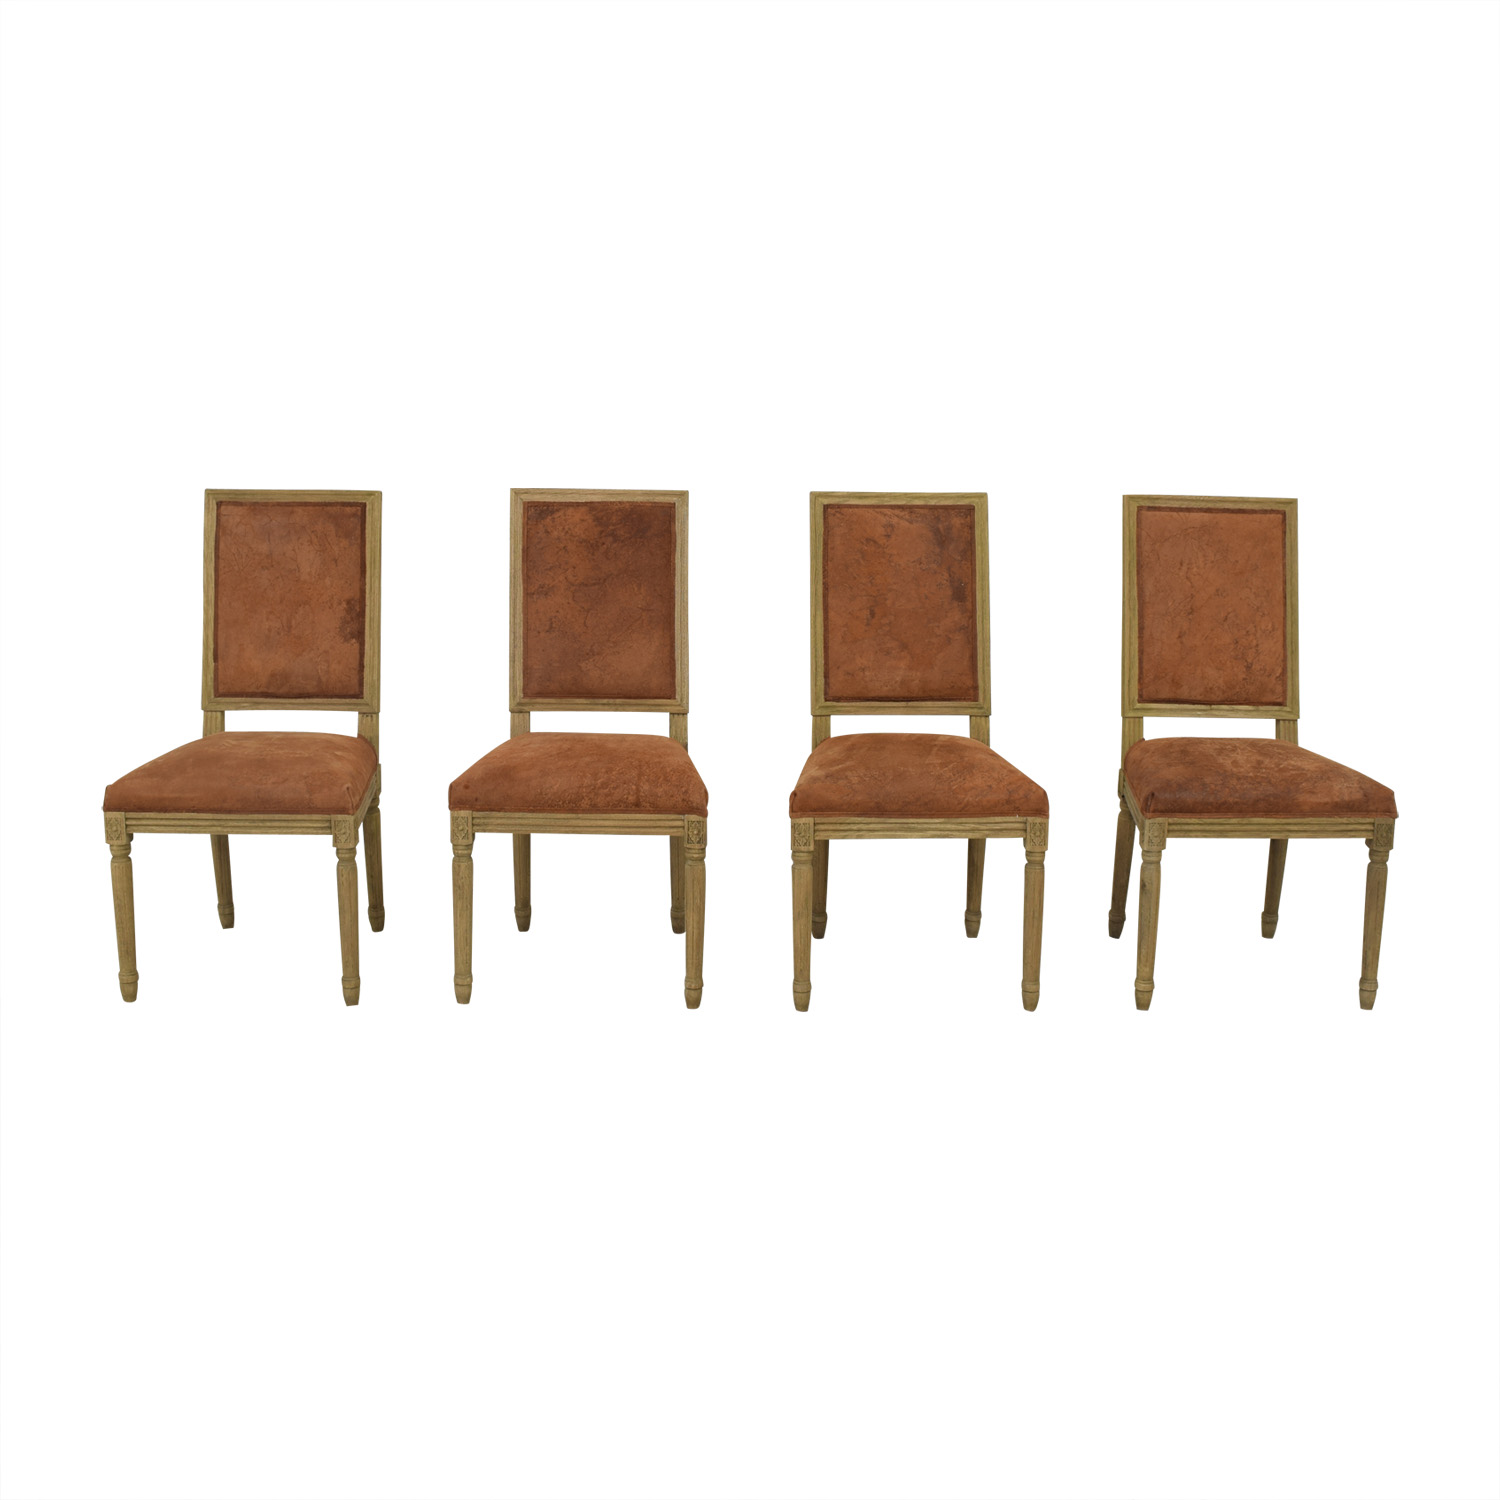 Restoration Hardware Restoration Hardware Vintage French Square Back Side Chairs on sale